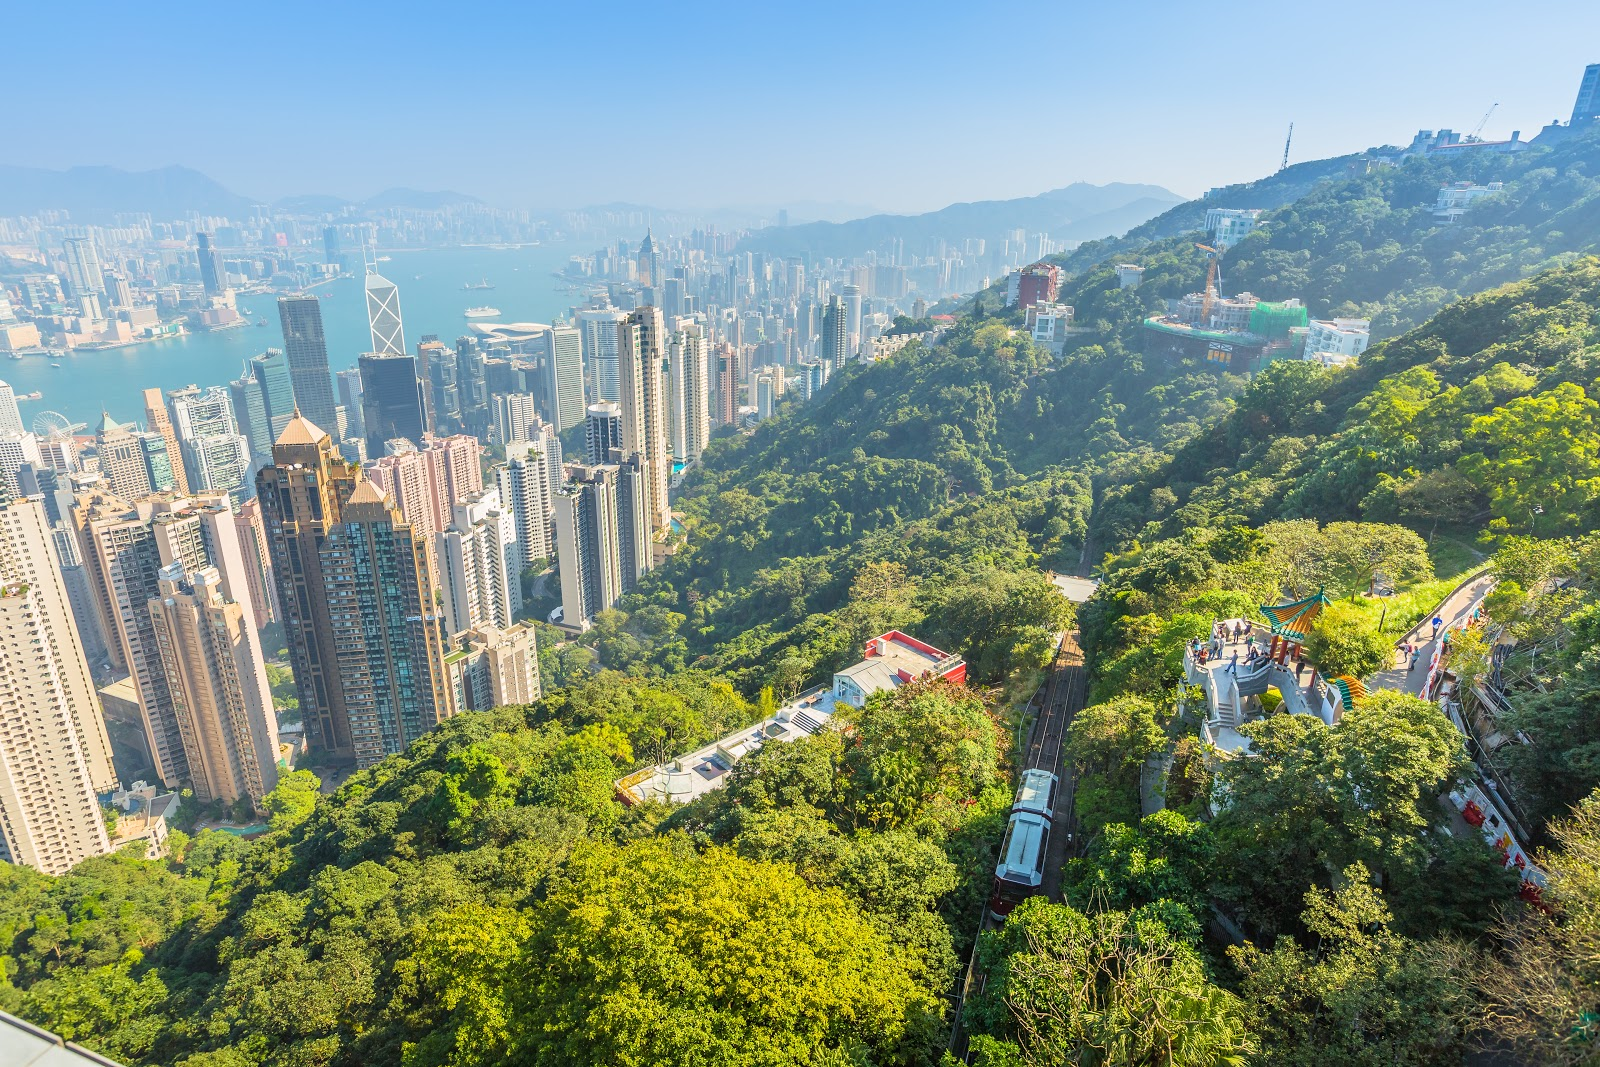 Explore: Top 3 Hiking Trails in Hong Kong